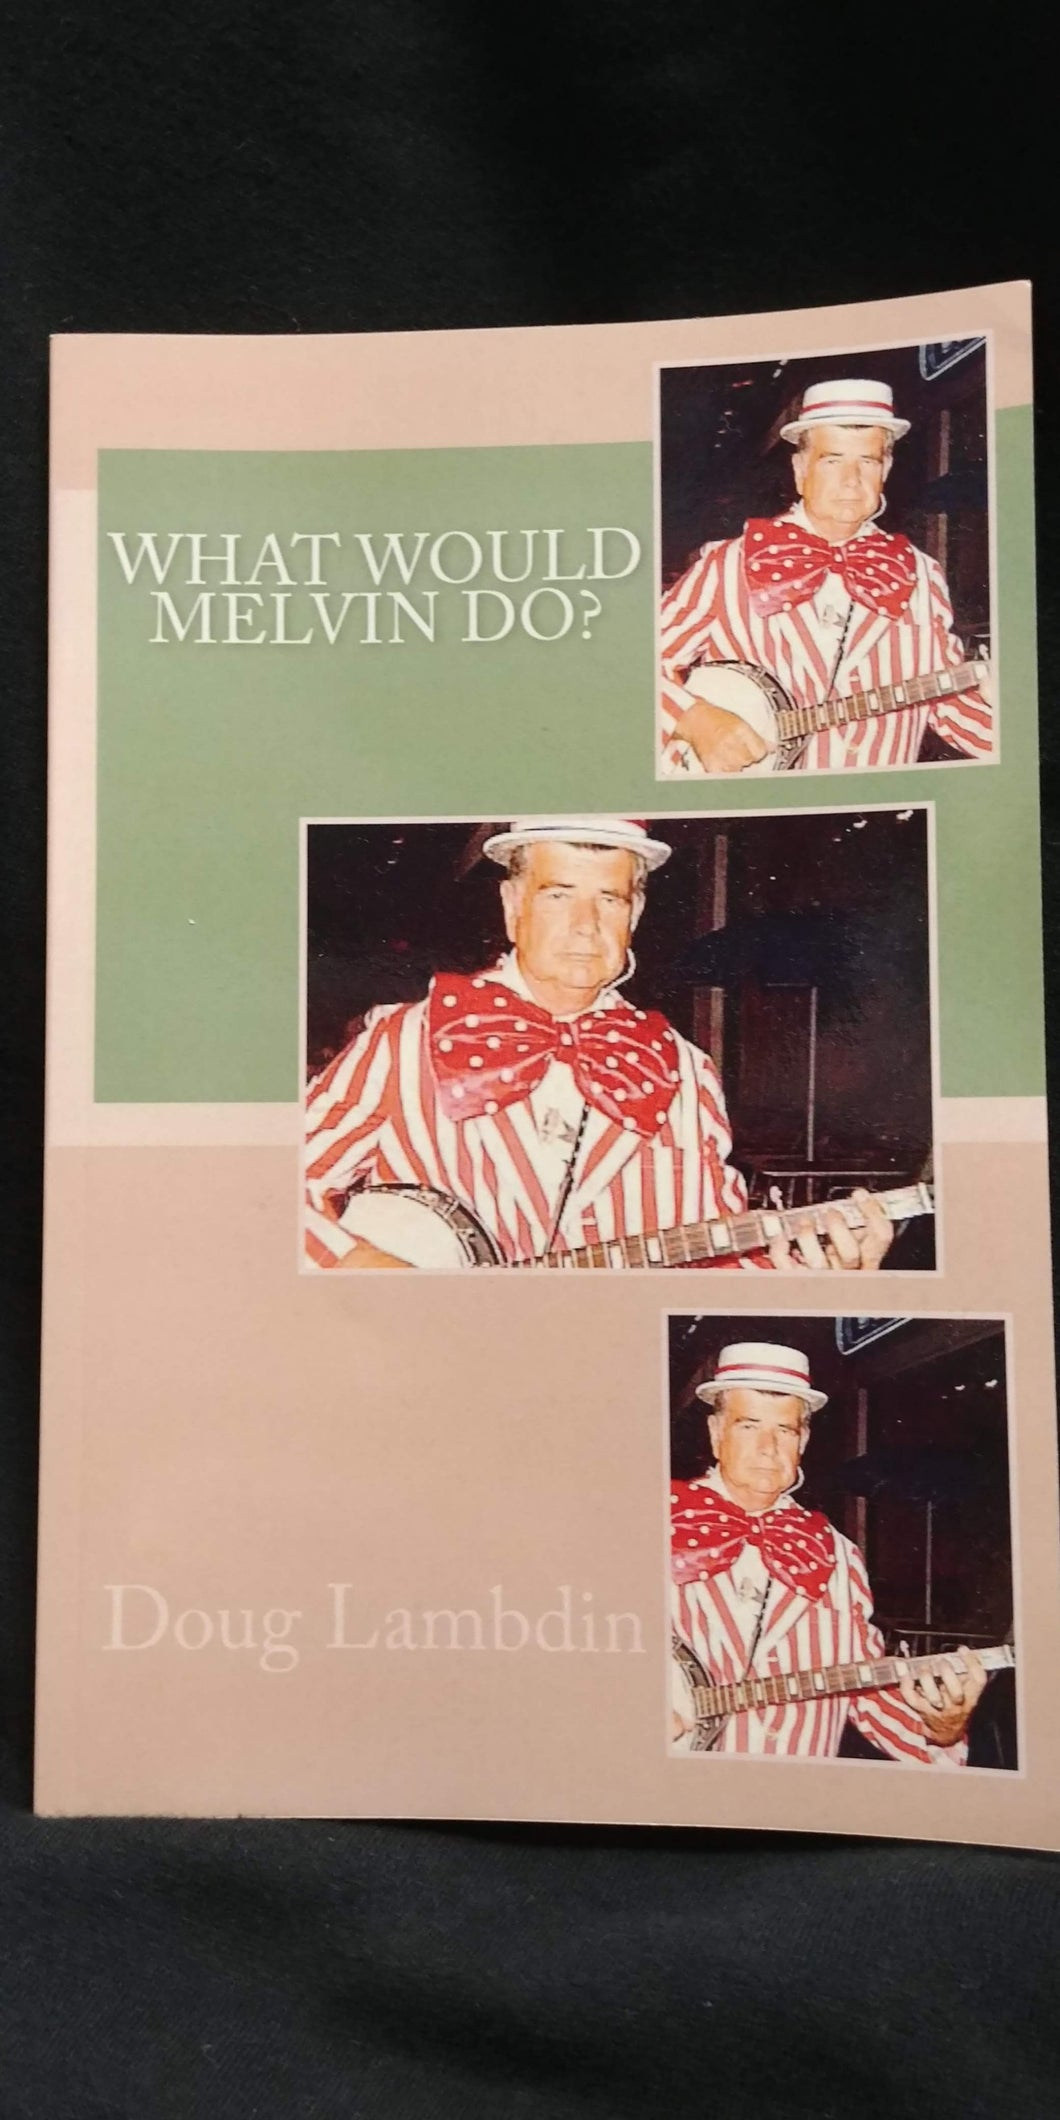 What Would Melvin Do?